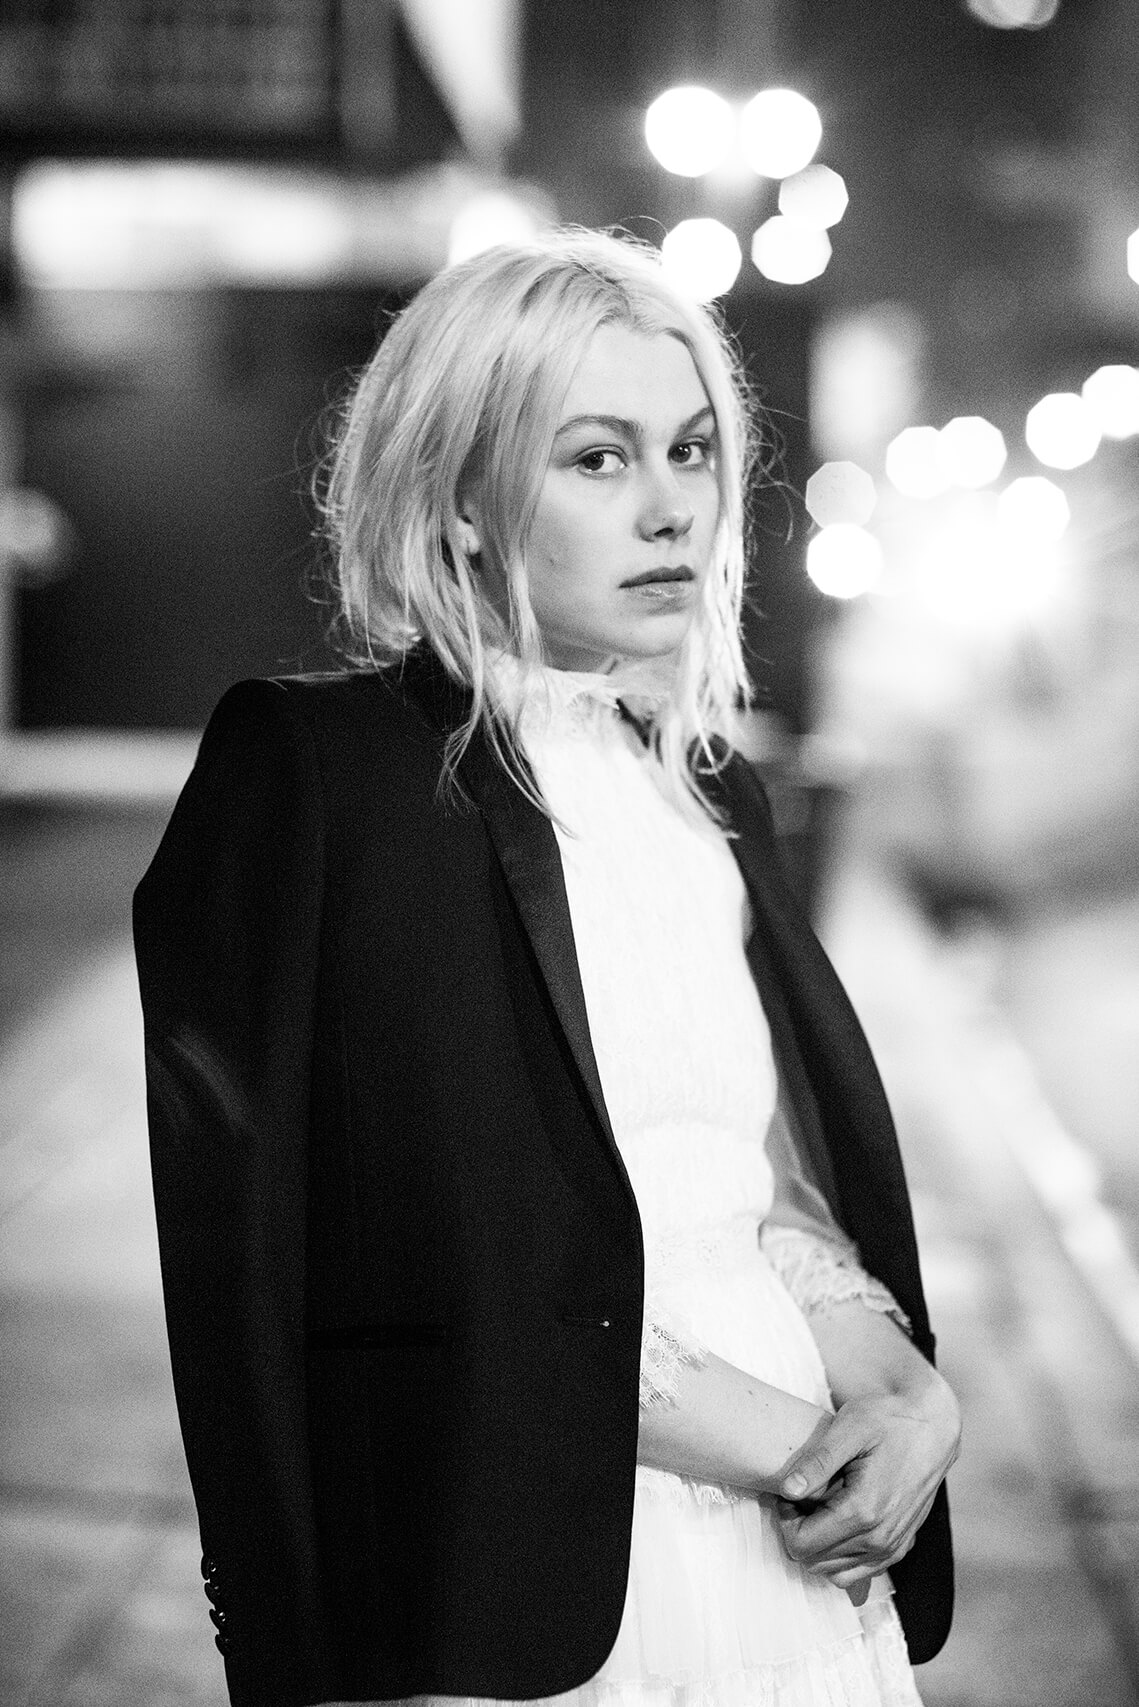 Best New Artist Nominees Phoebe Bridgers And Noah Cyrus Cover Past Nominees - Cali Post